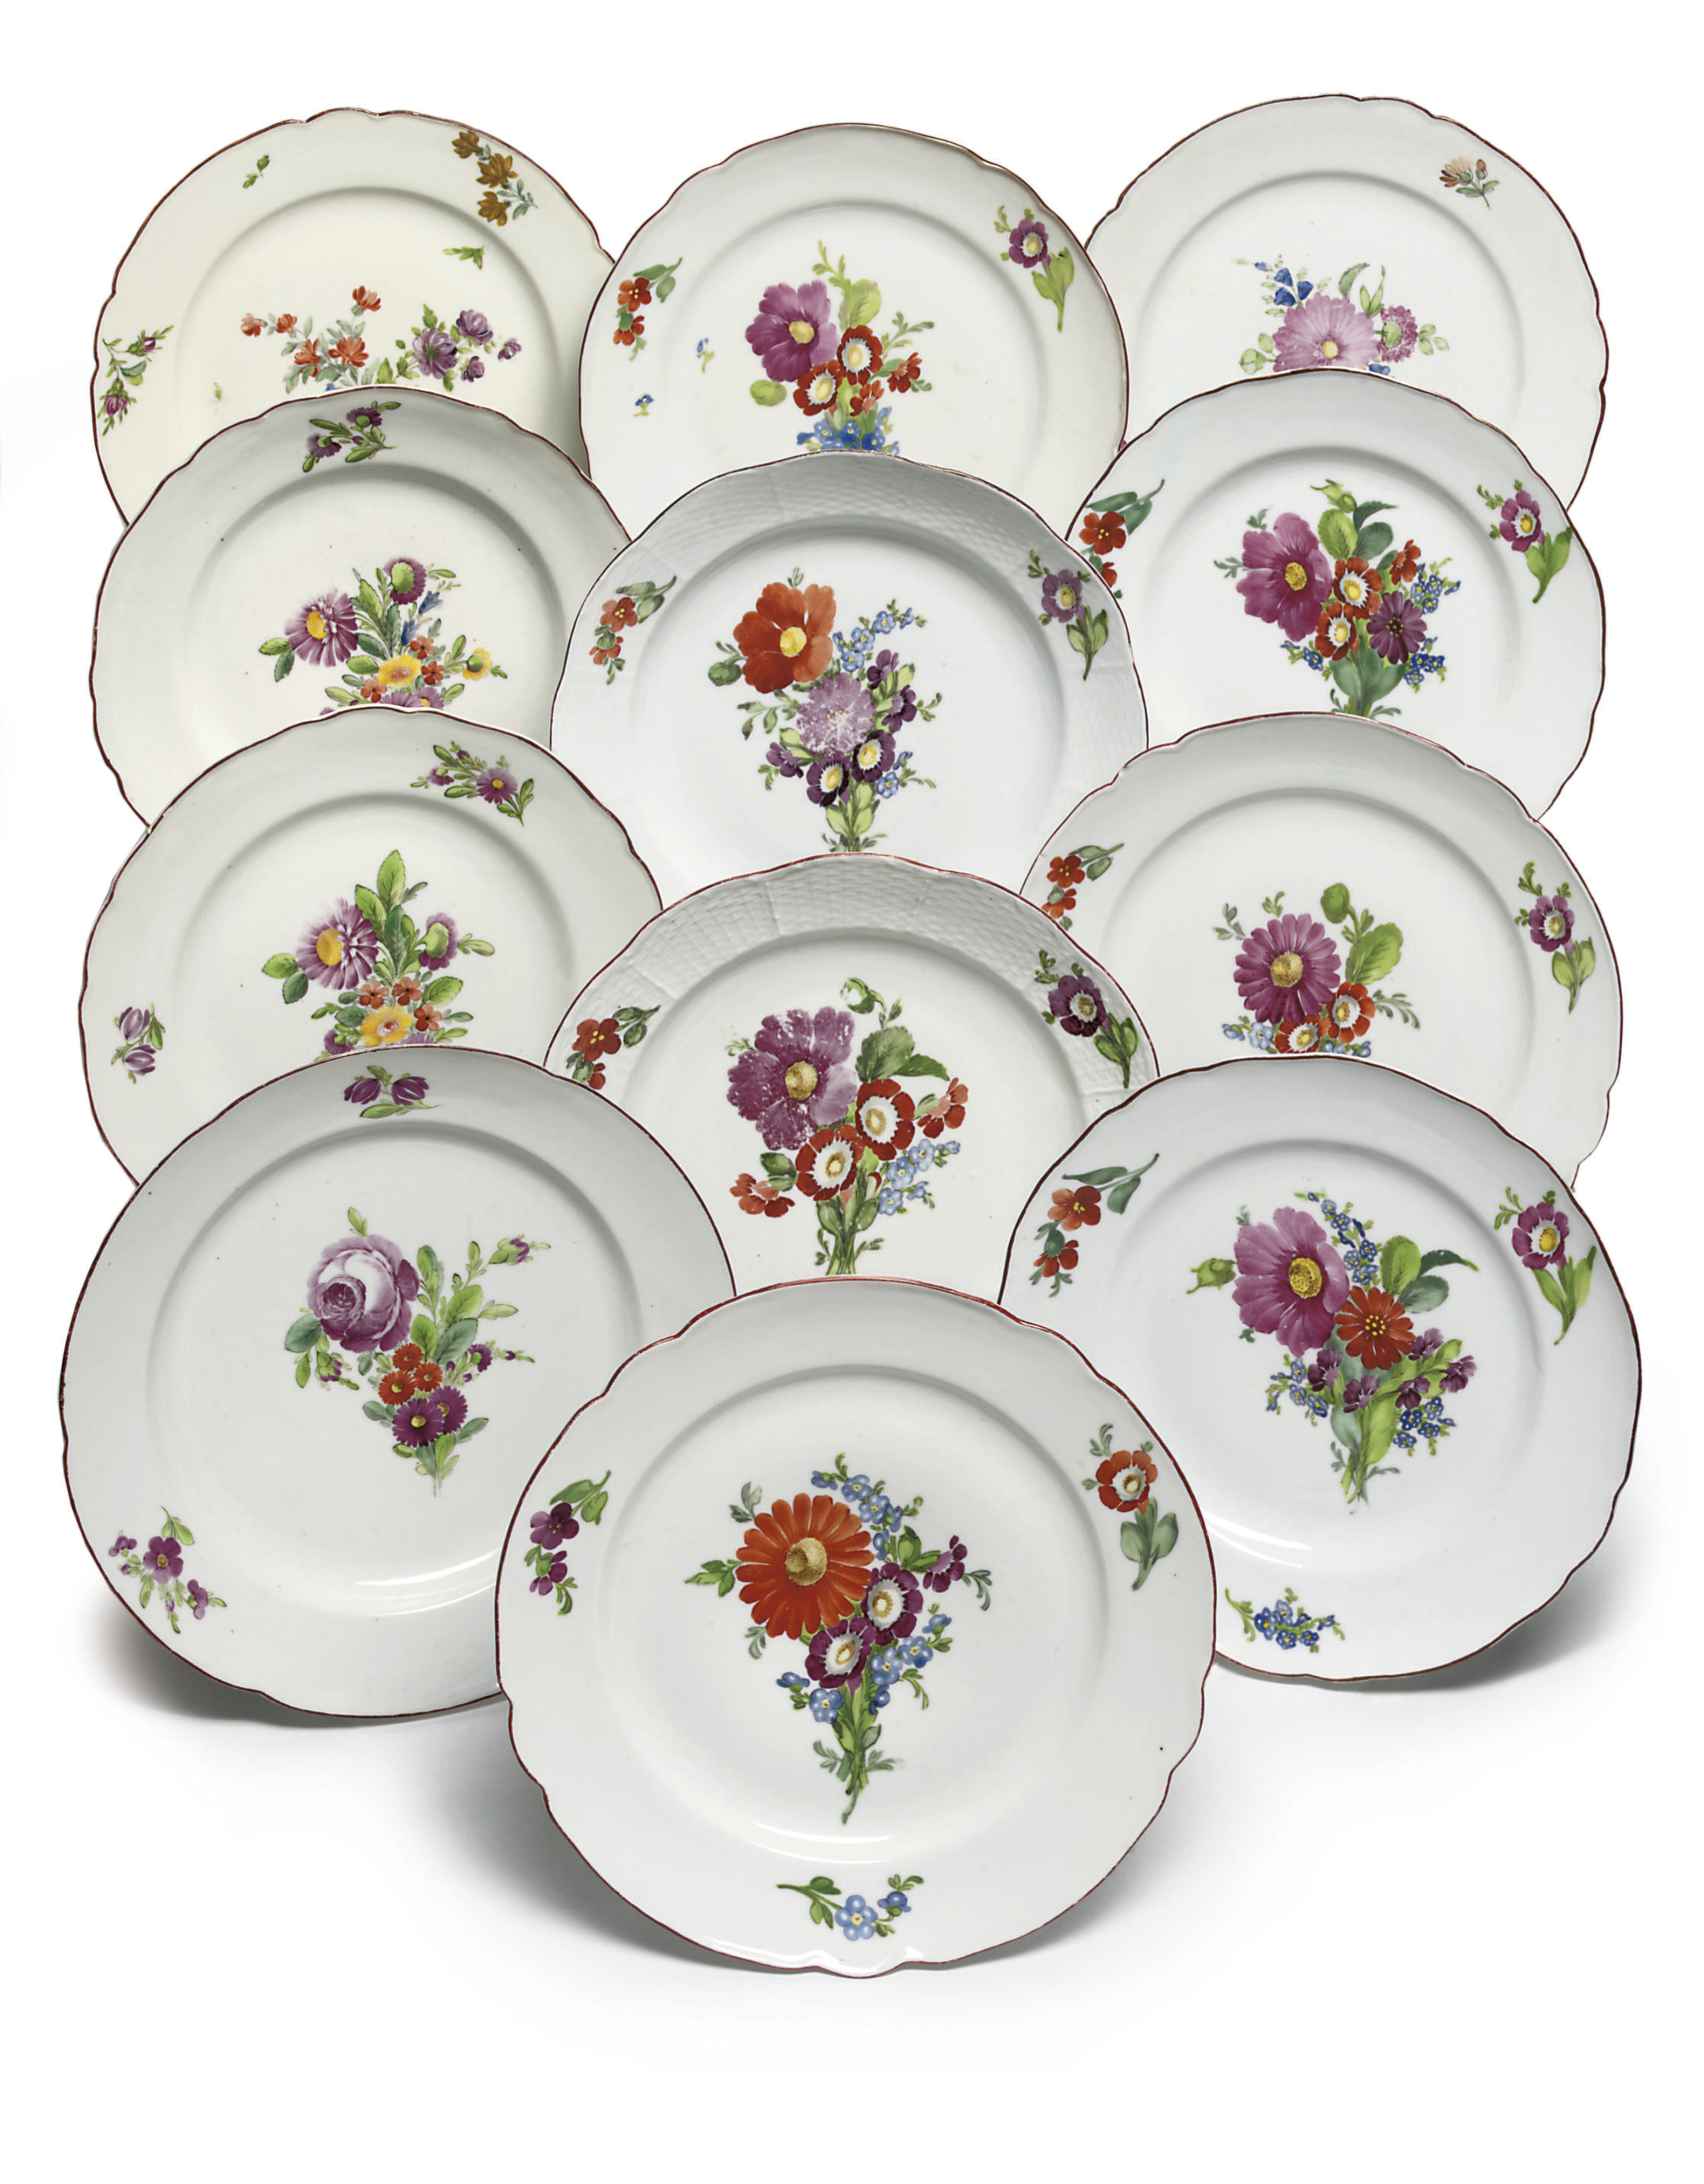 Twelve porcelain plates